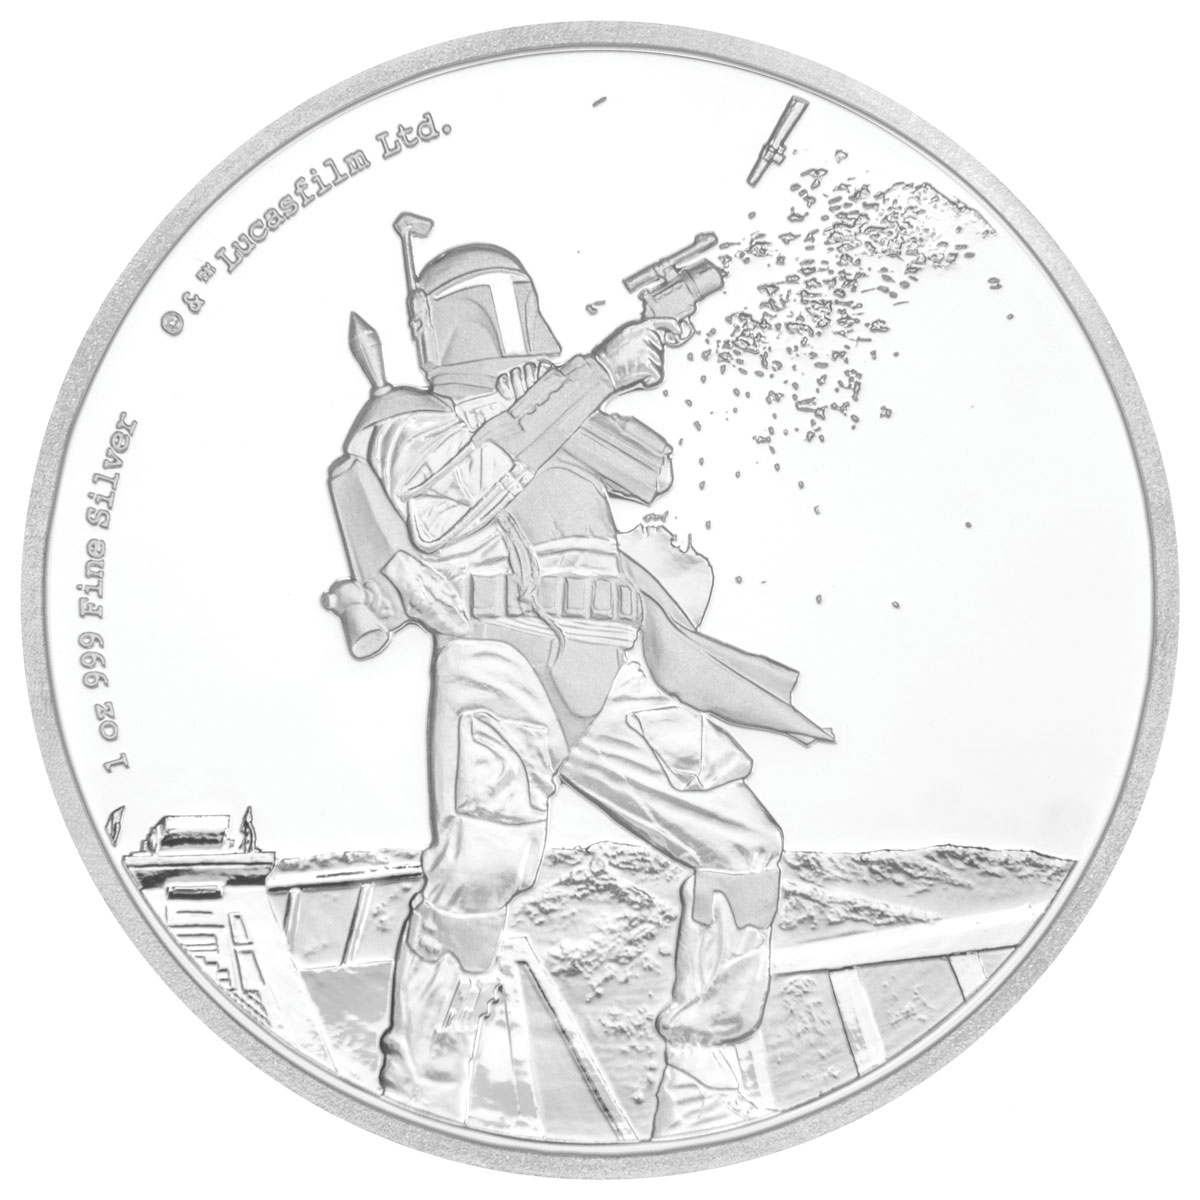 2017 Niue Star Wars Classic - Boba Fett 1 oz Silver Proof $2 Coin GEM Proof OGP